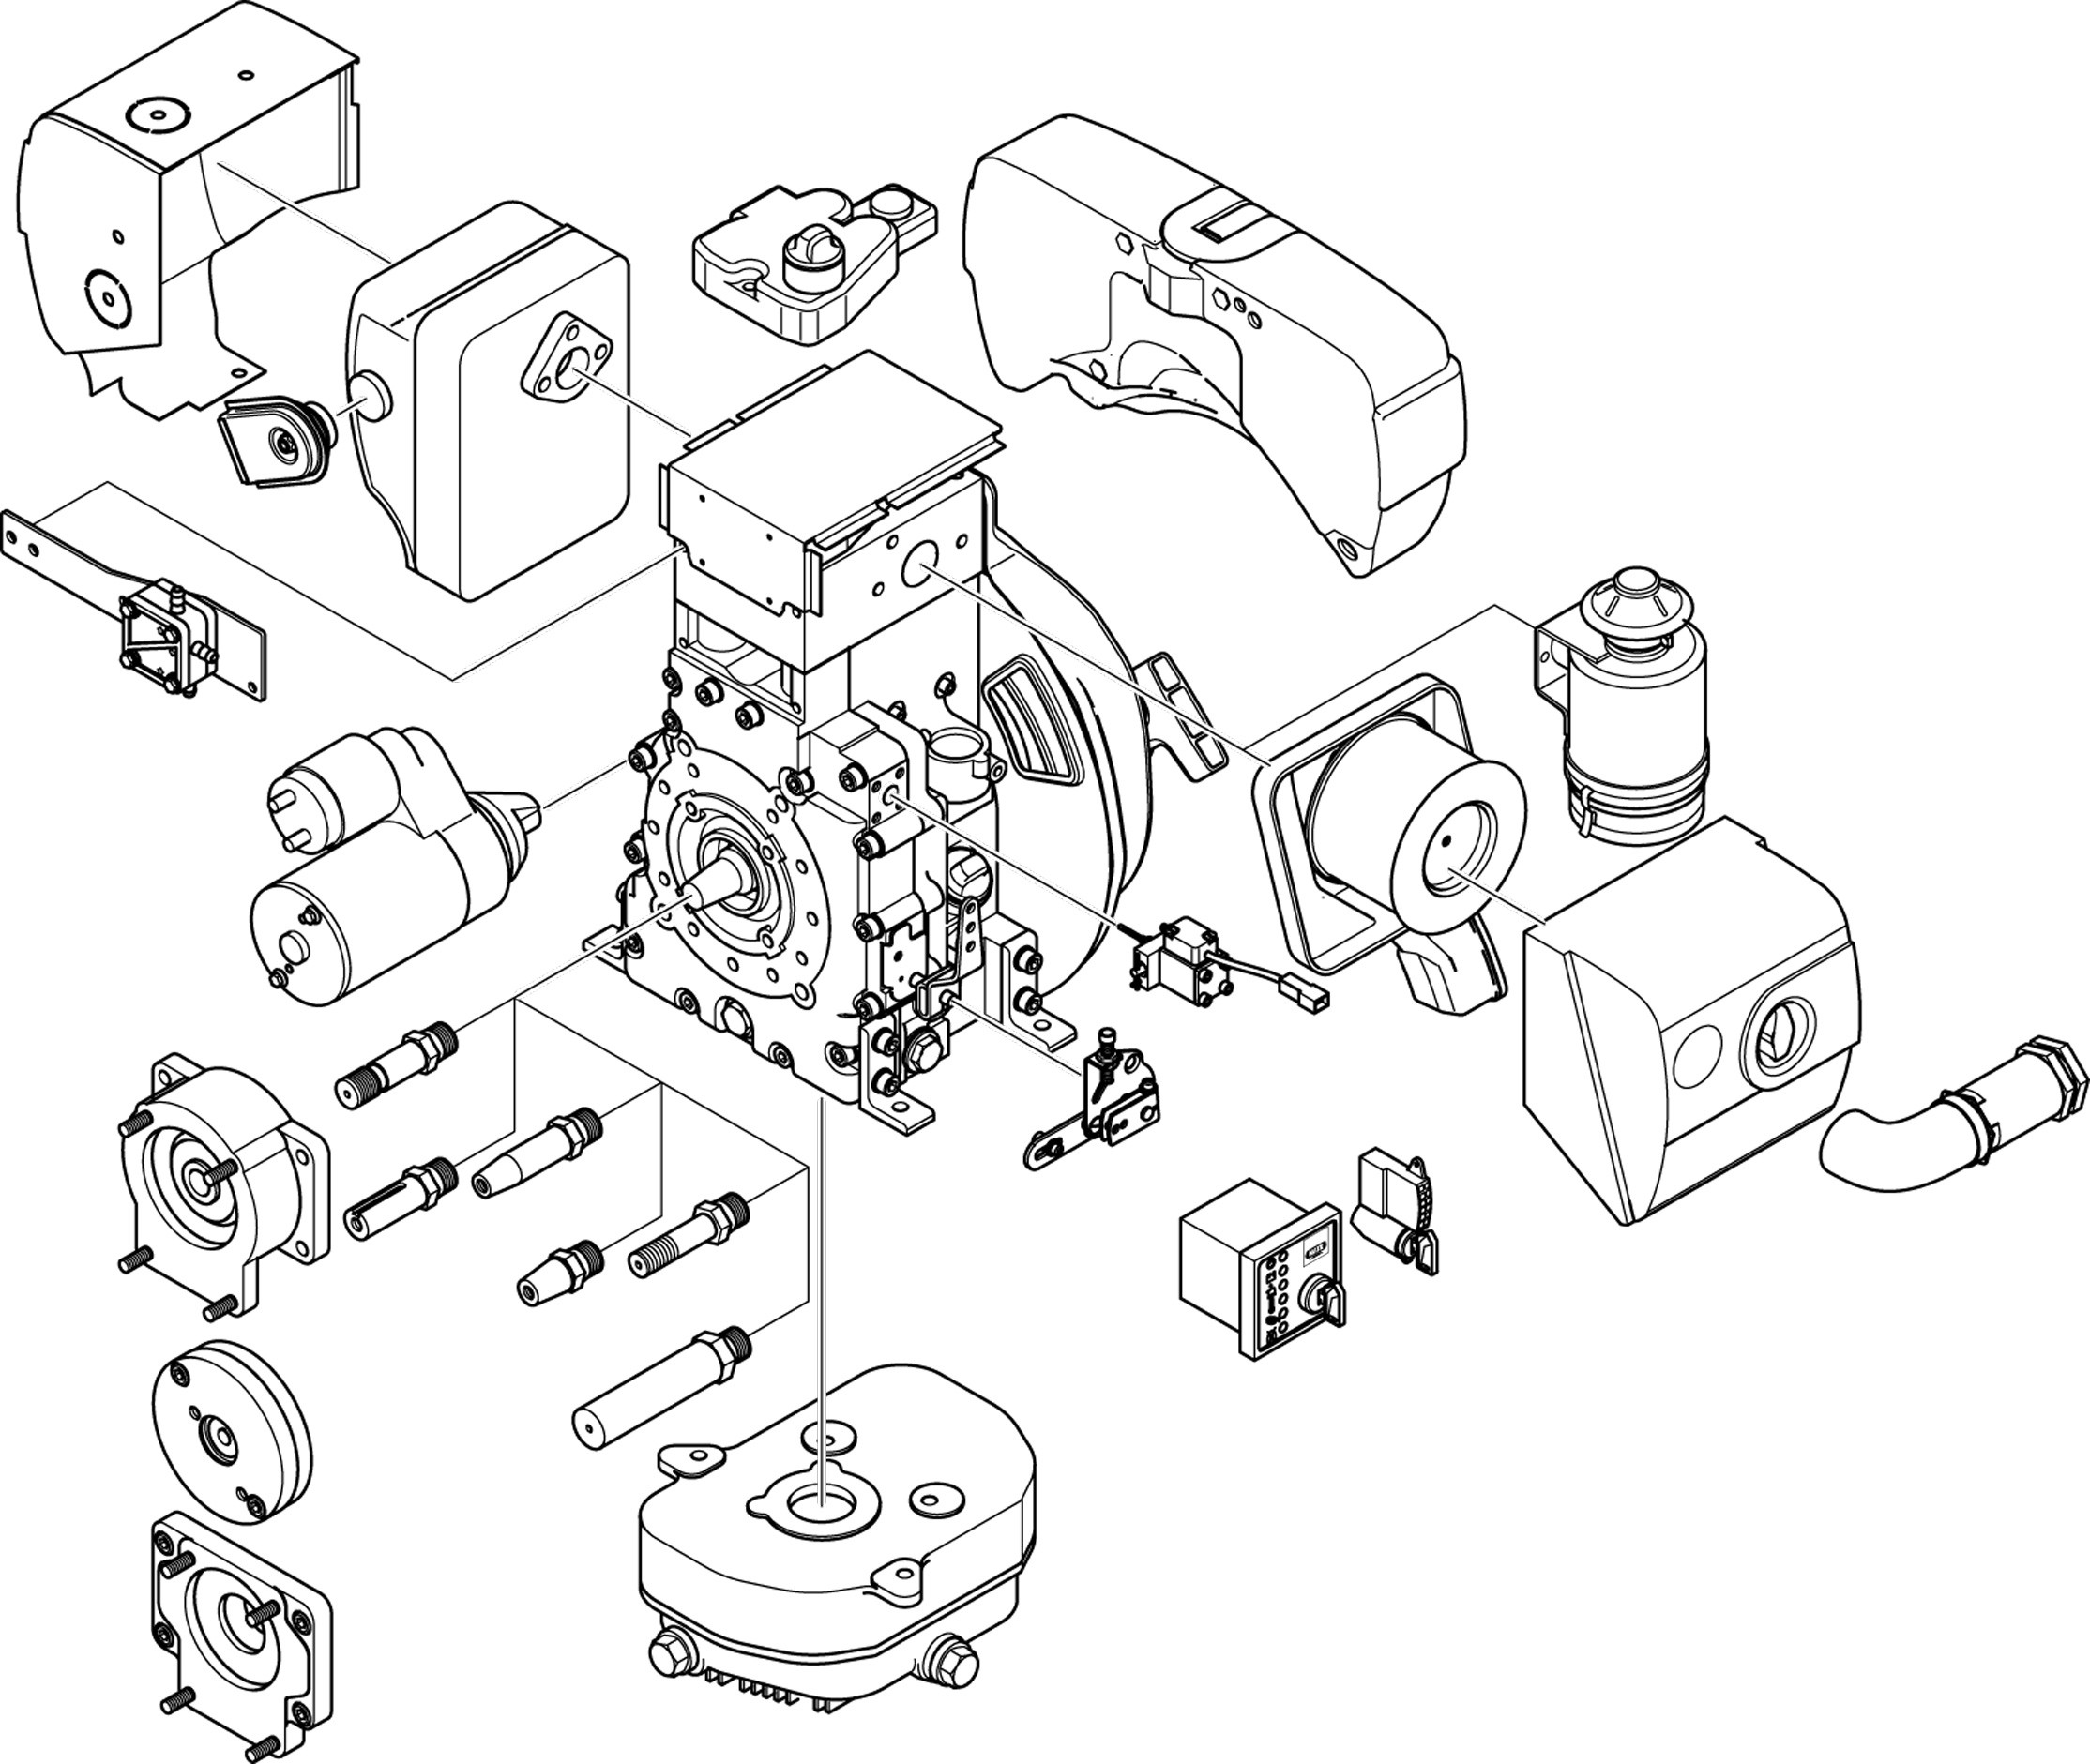 Single Cylinder Engine Diagram Hatz Engine Diagram Another Blog About Wiring Diagram • Of Single Cylinder Engine Diagram